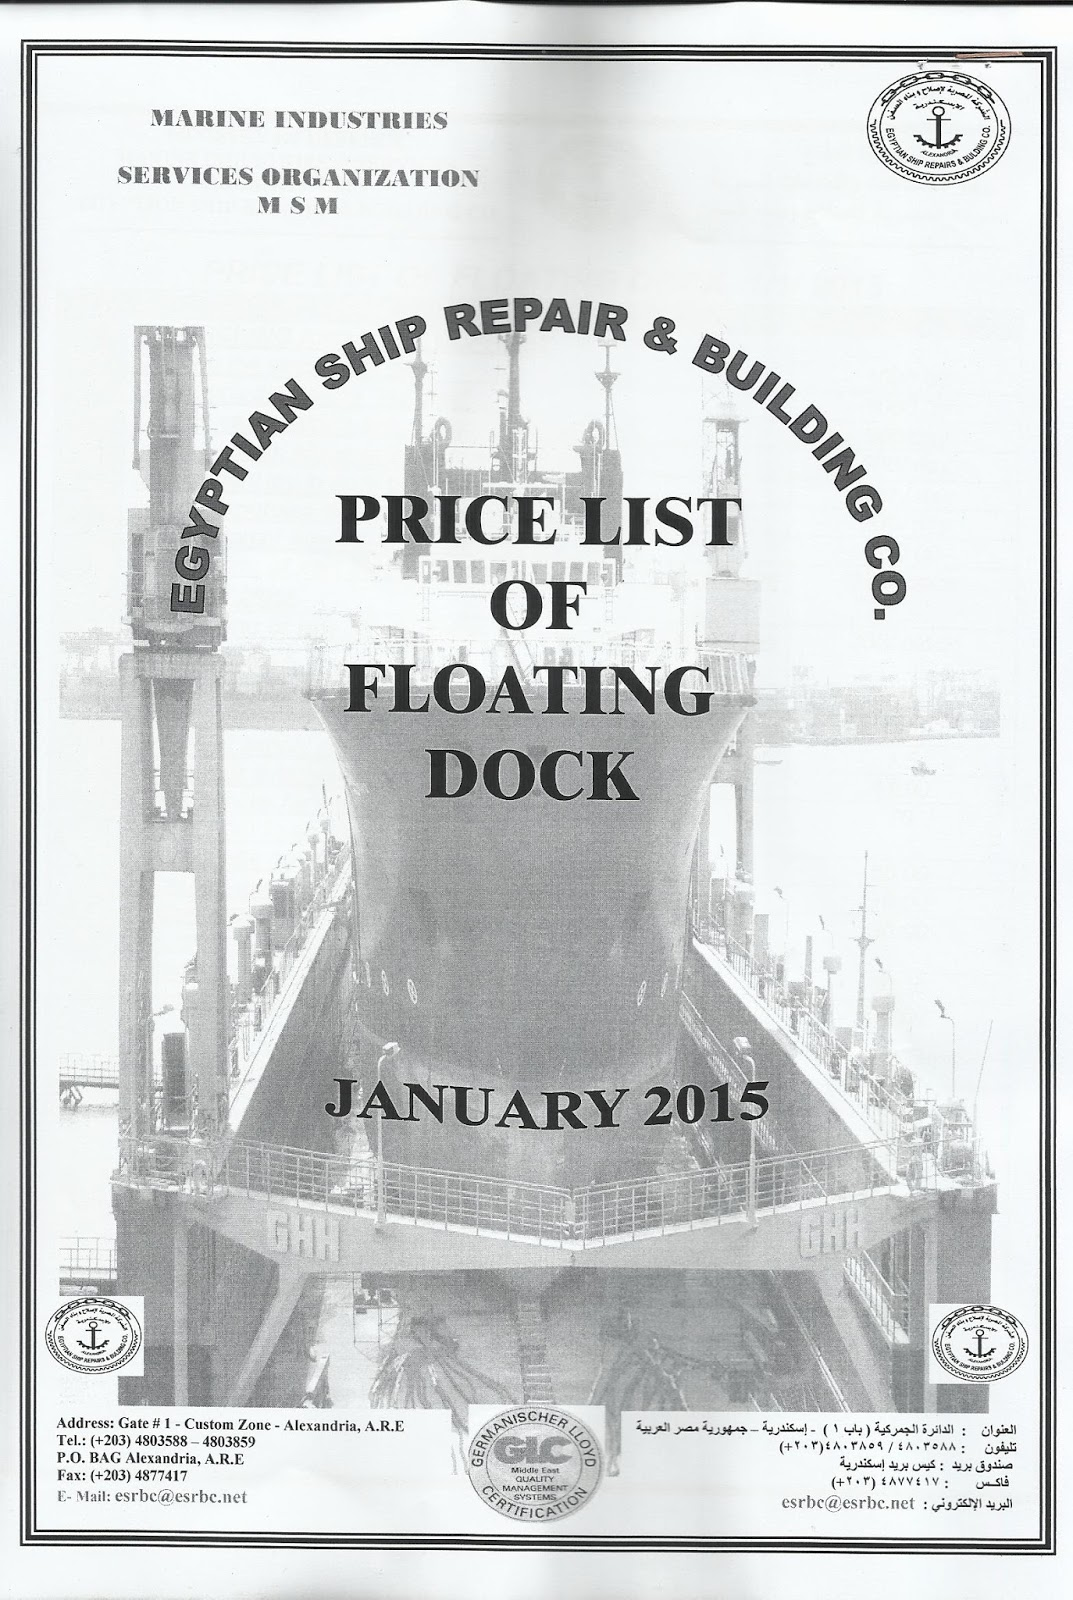 Real Vessel Tips: Good Shipyard for Docking with v competitive prices